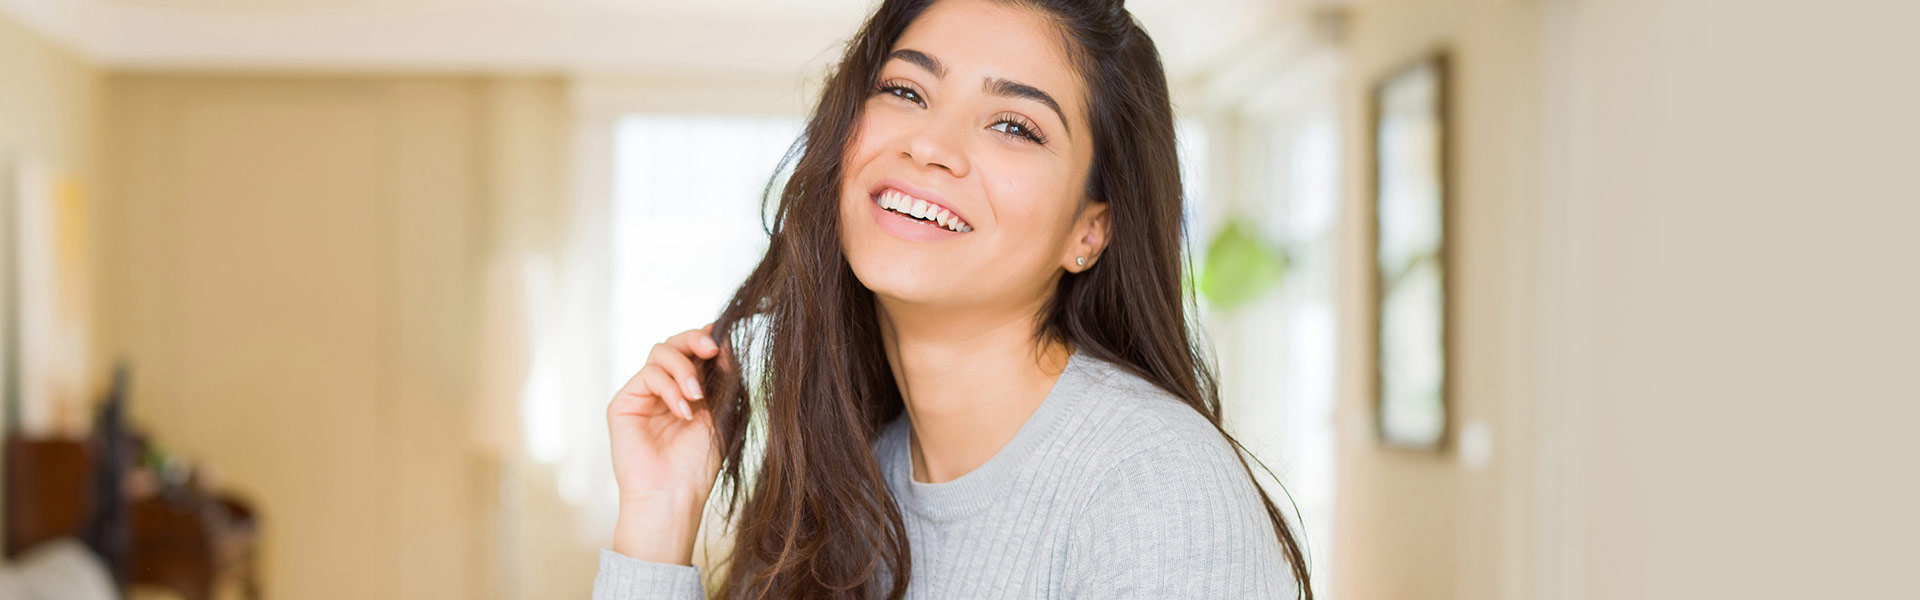 Dental Crowns Could Be the Solution to Restoring Your Smile